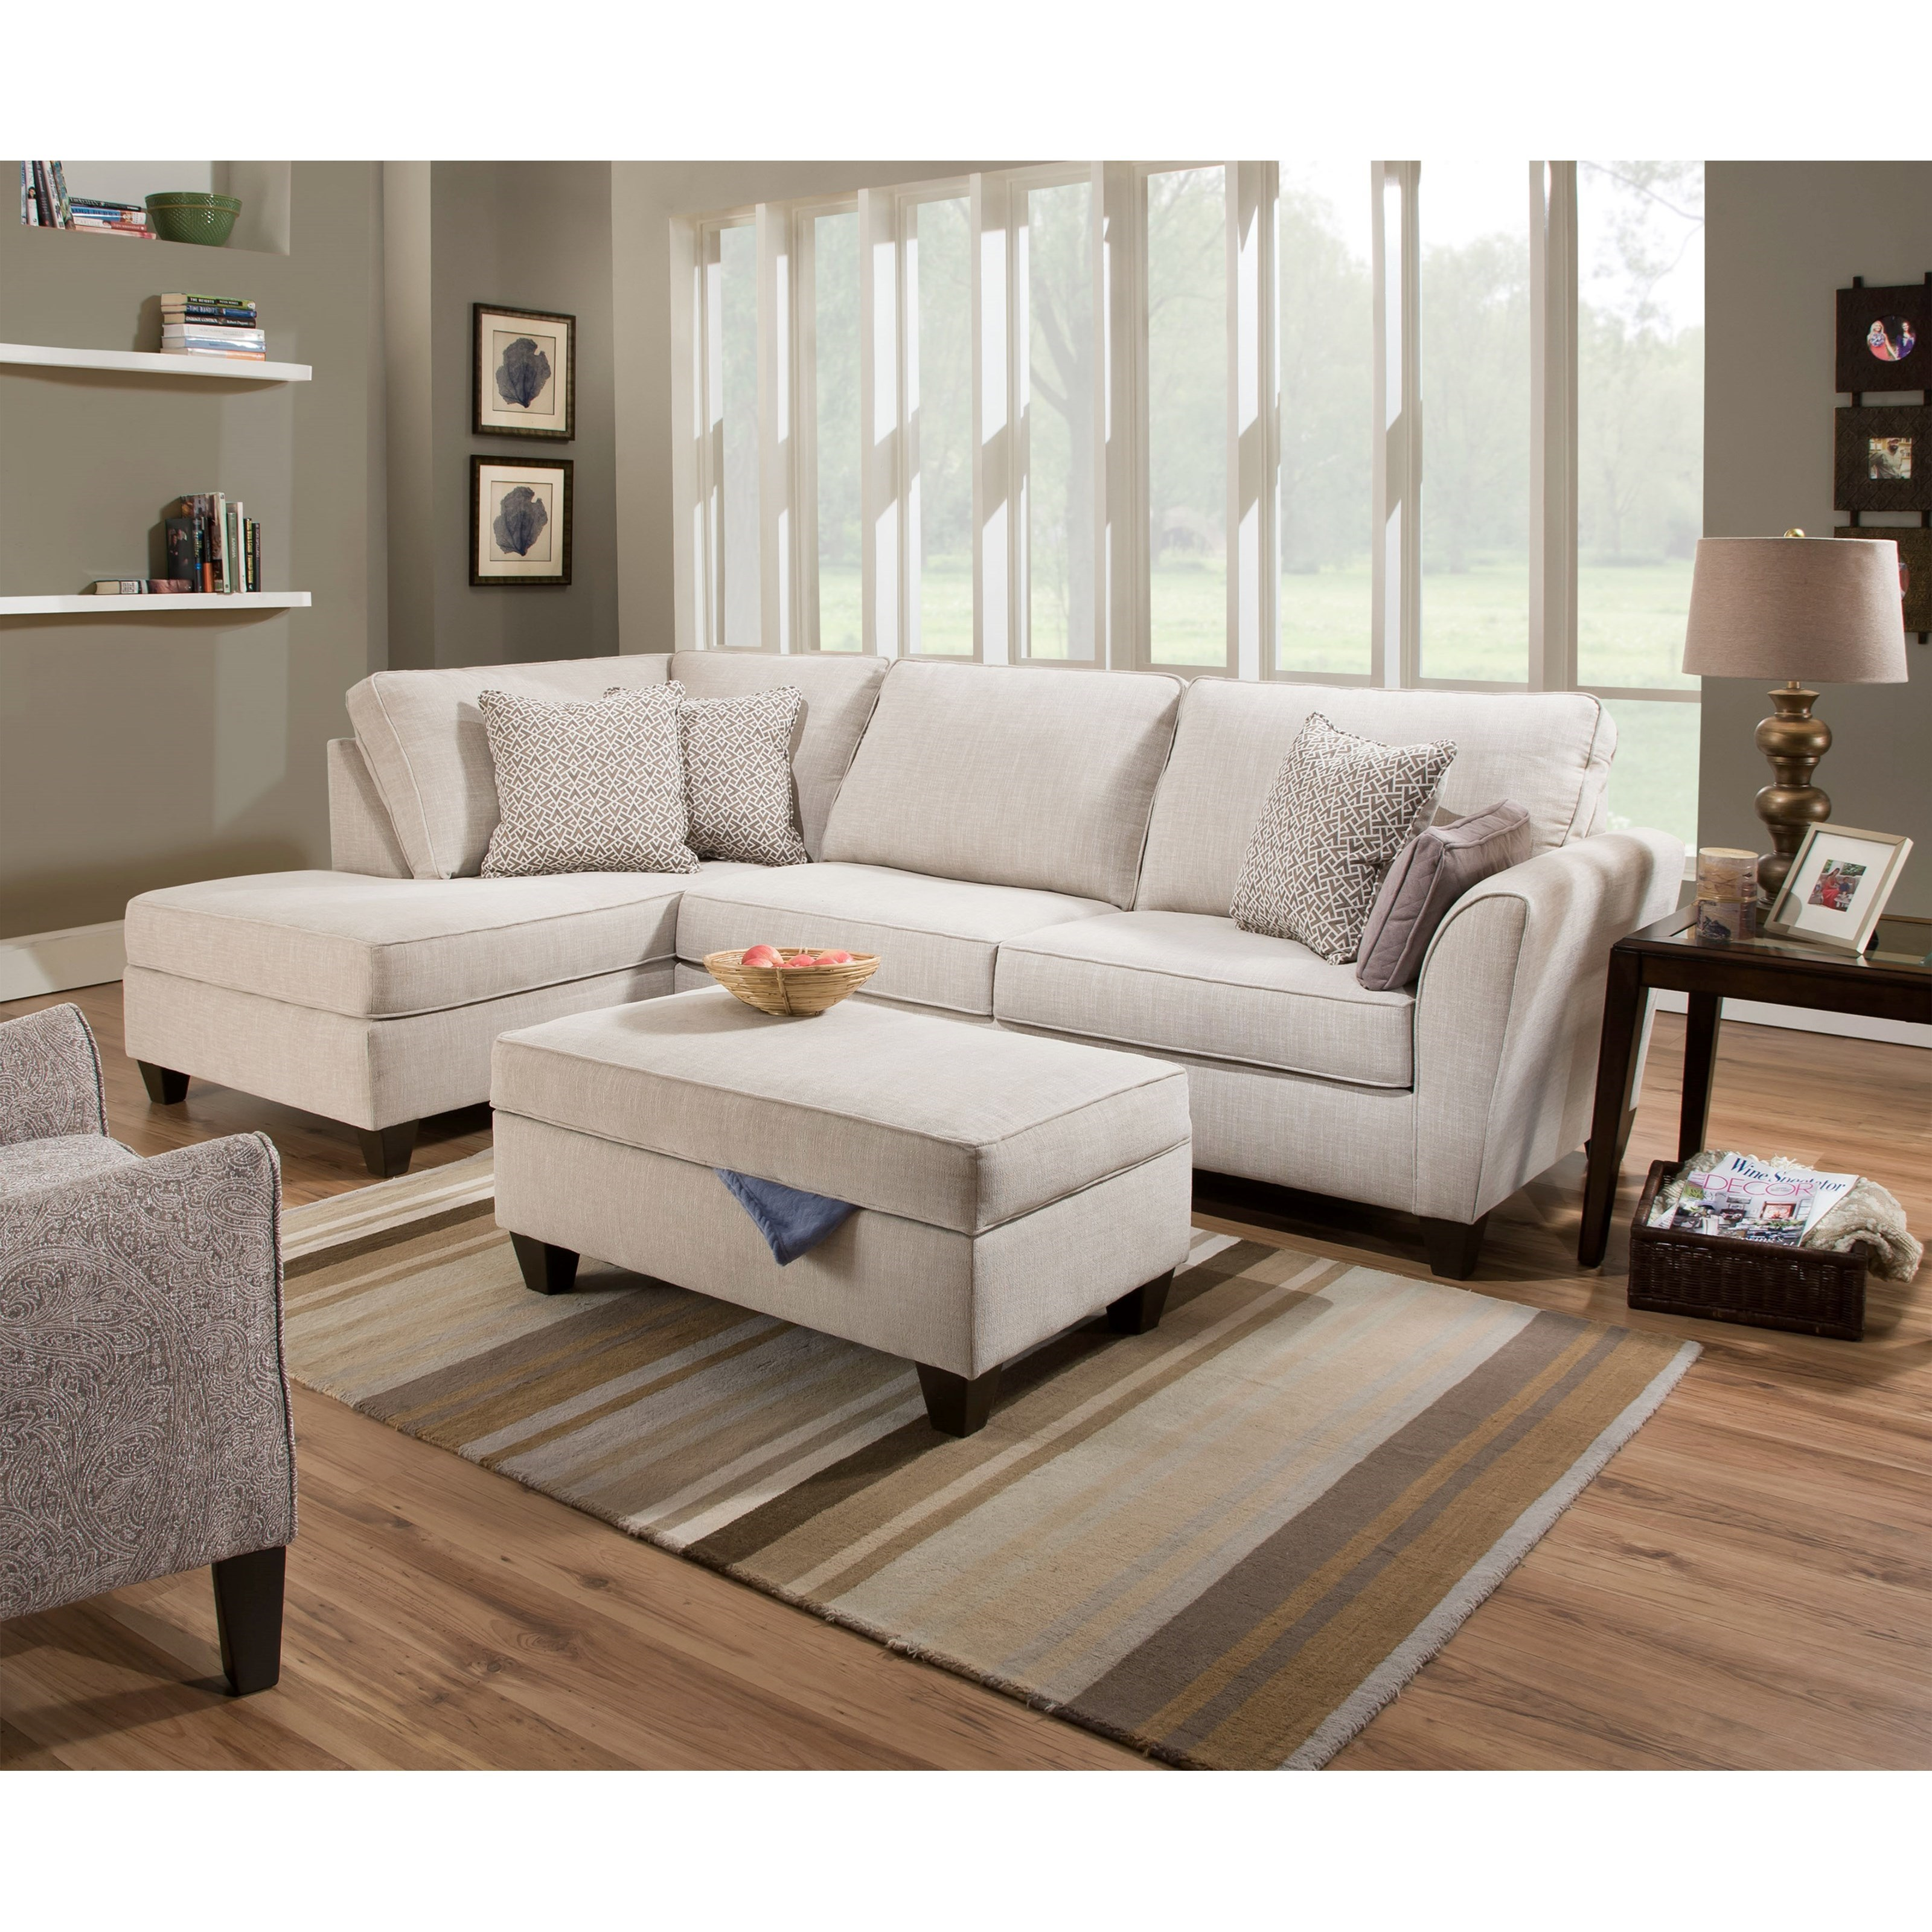 7081 2-Piece Sectional by Lane at Esprit Decor Home Furnishings